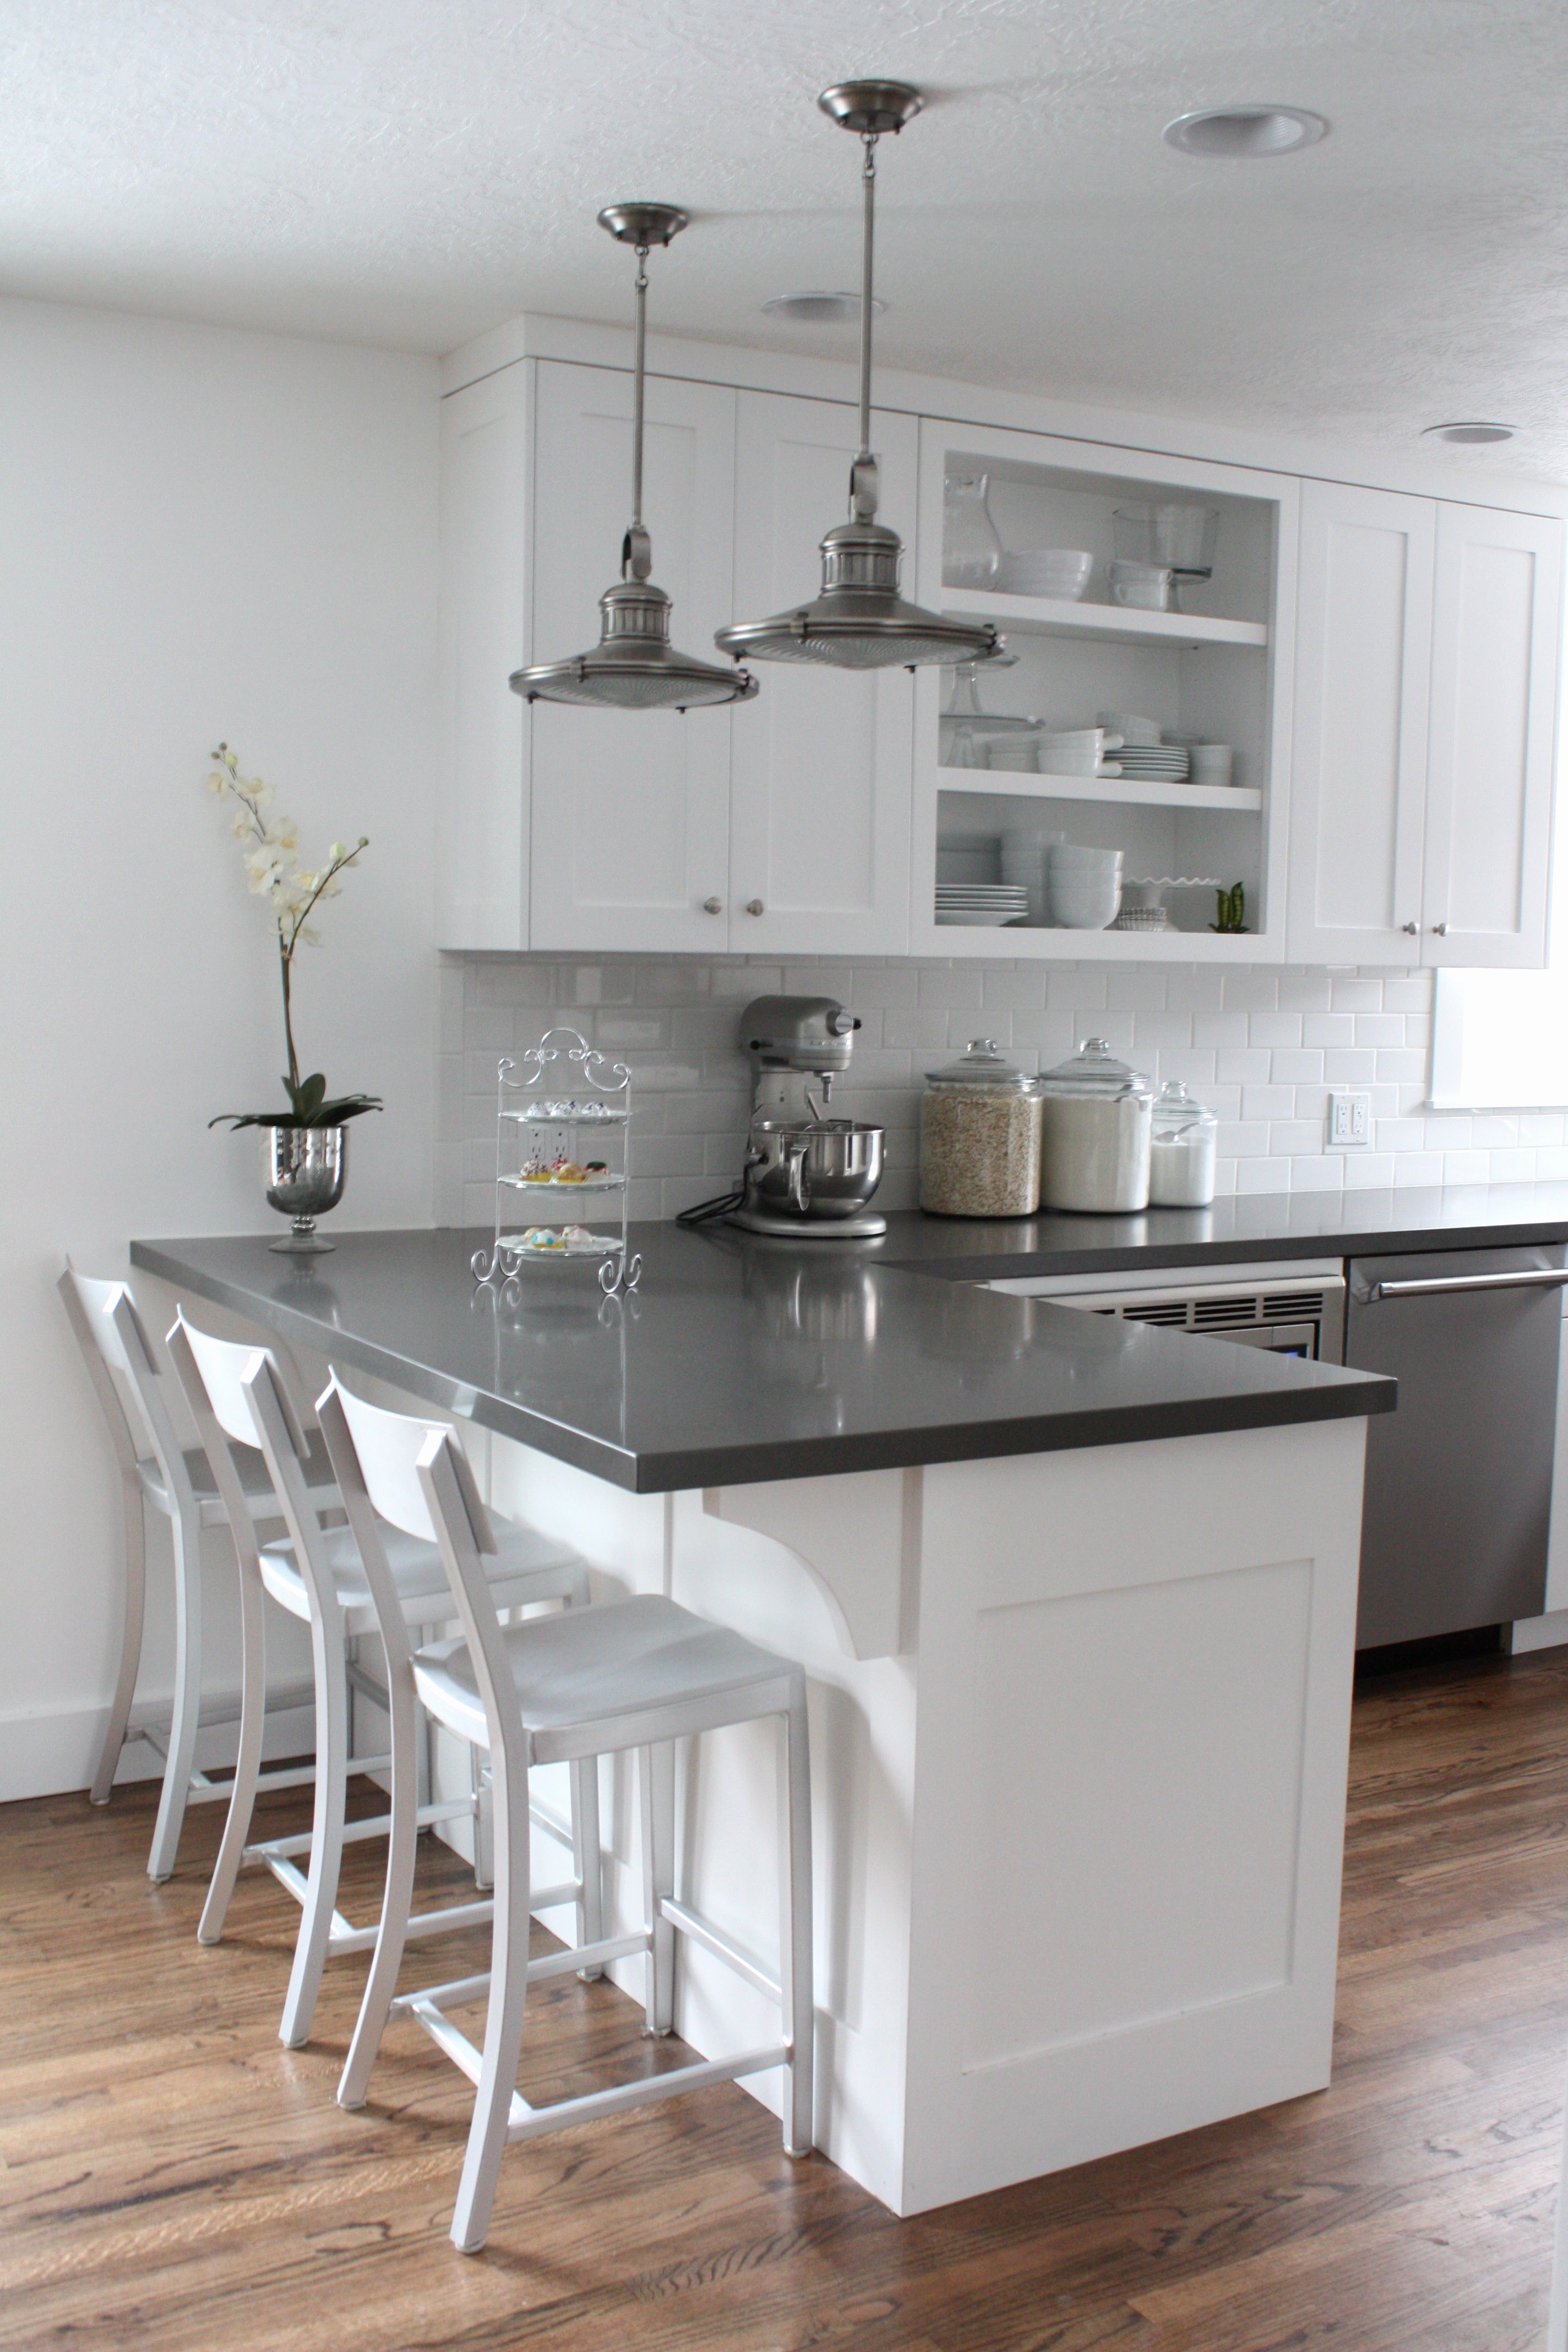 hgtv hardwood floors ideas of terrific hgtv kitchen remodels on remodel house plans kitchen with regard to nice looking hgtv kitchen remodels or kitchen remodels hgtv